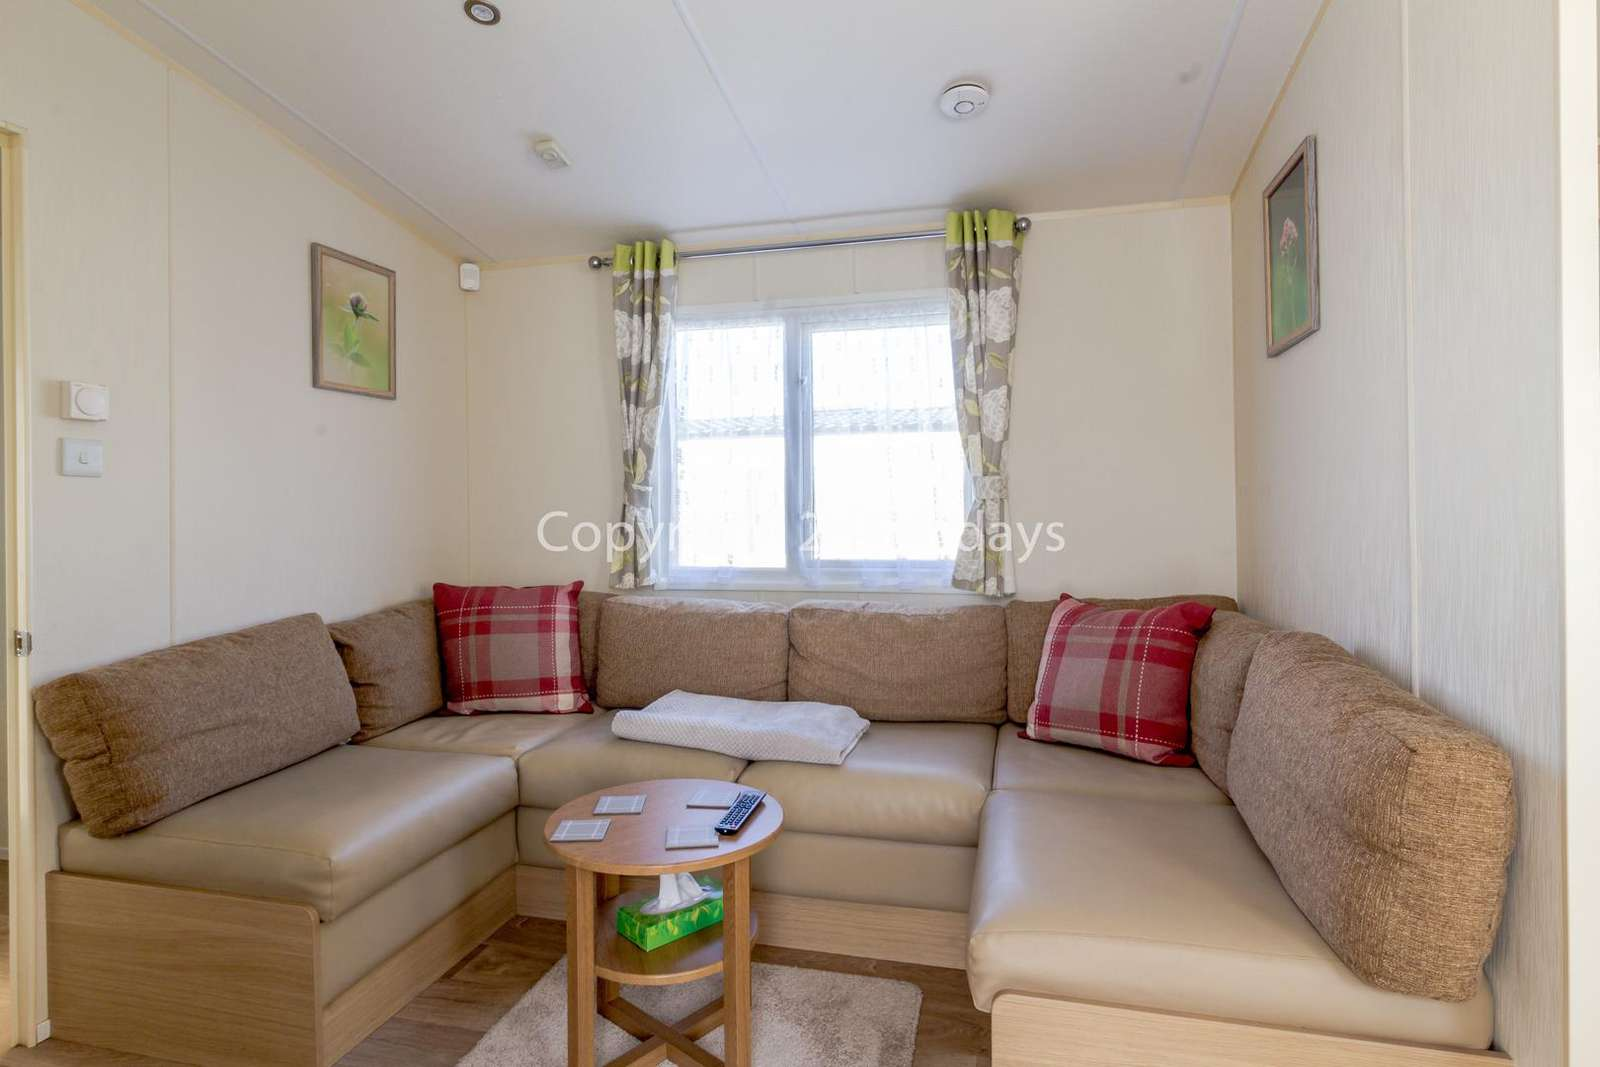 A cosy lounge area with a TV and a comfortable sofa bed